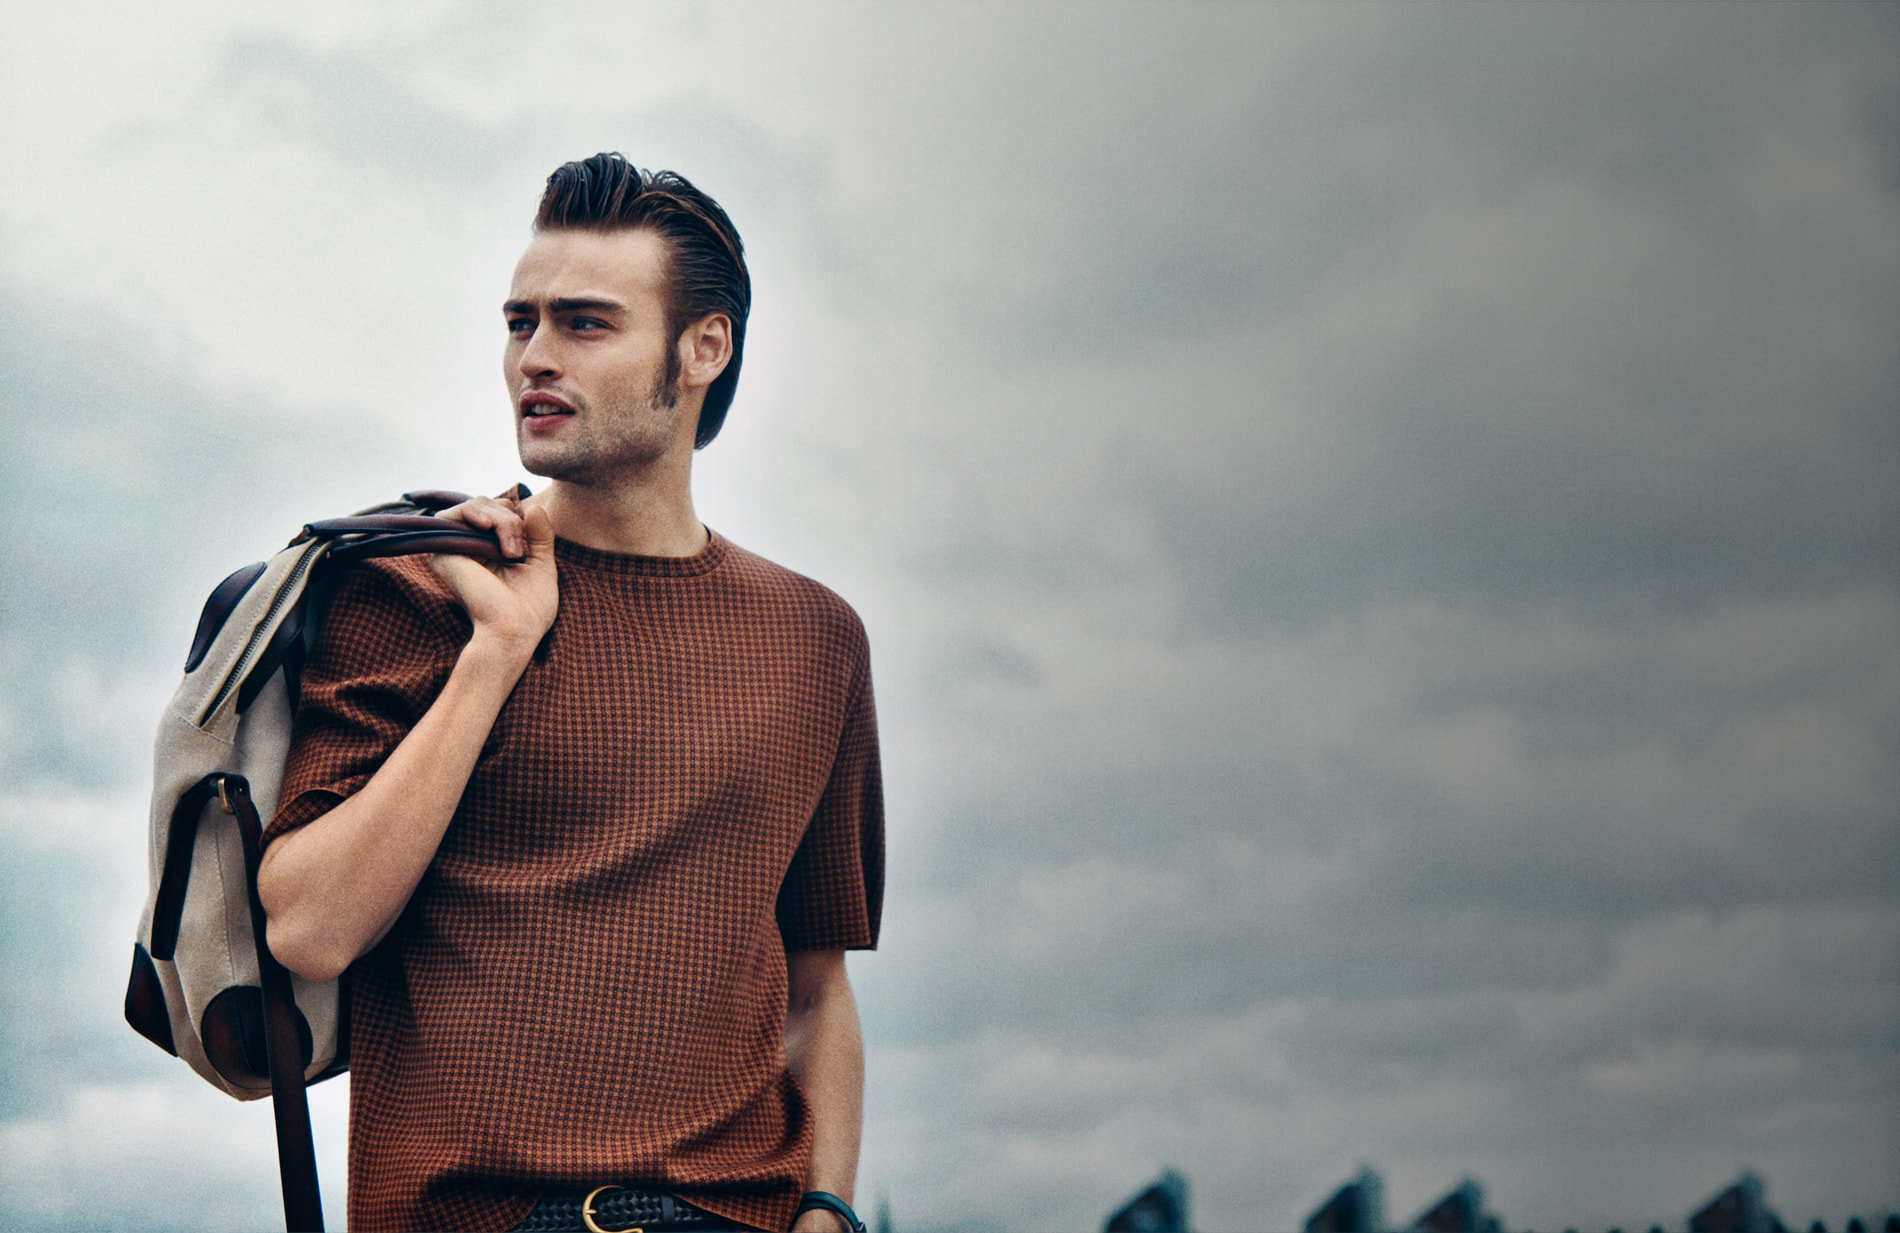 Douglas Booth widescreen wallpapers